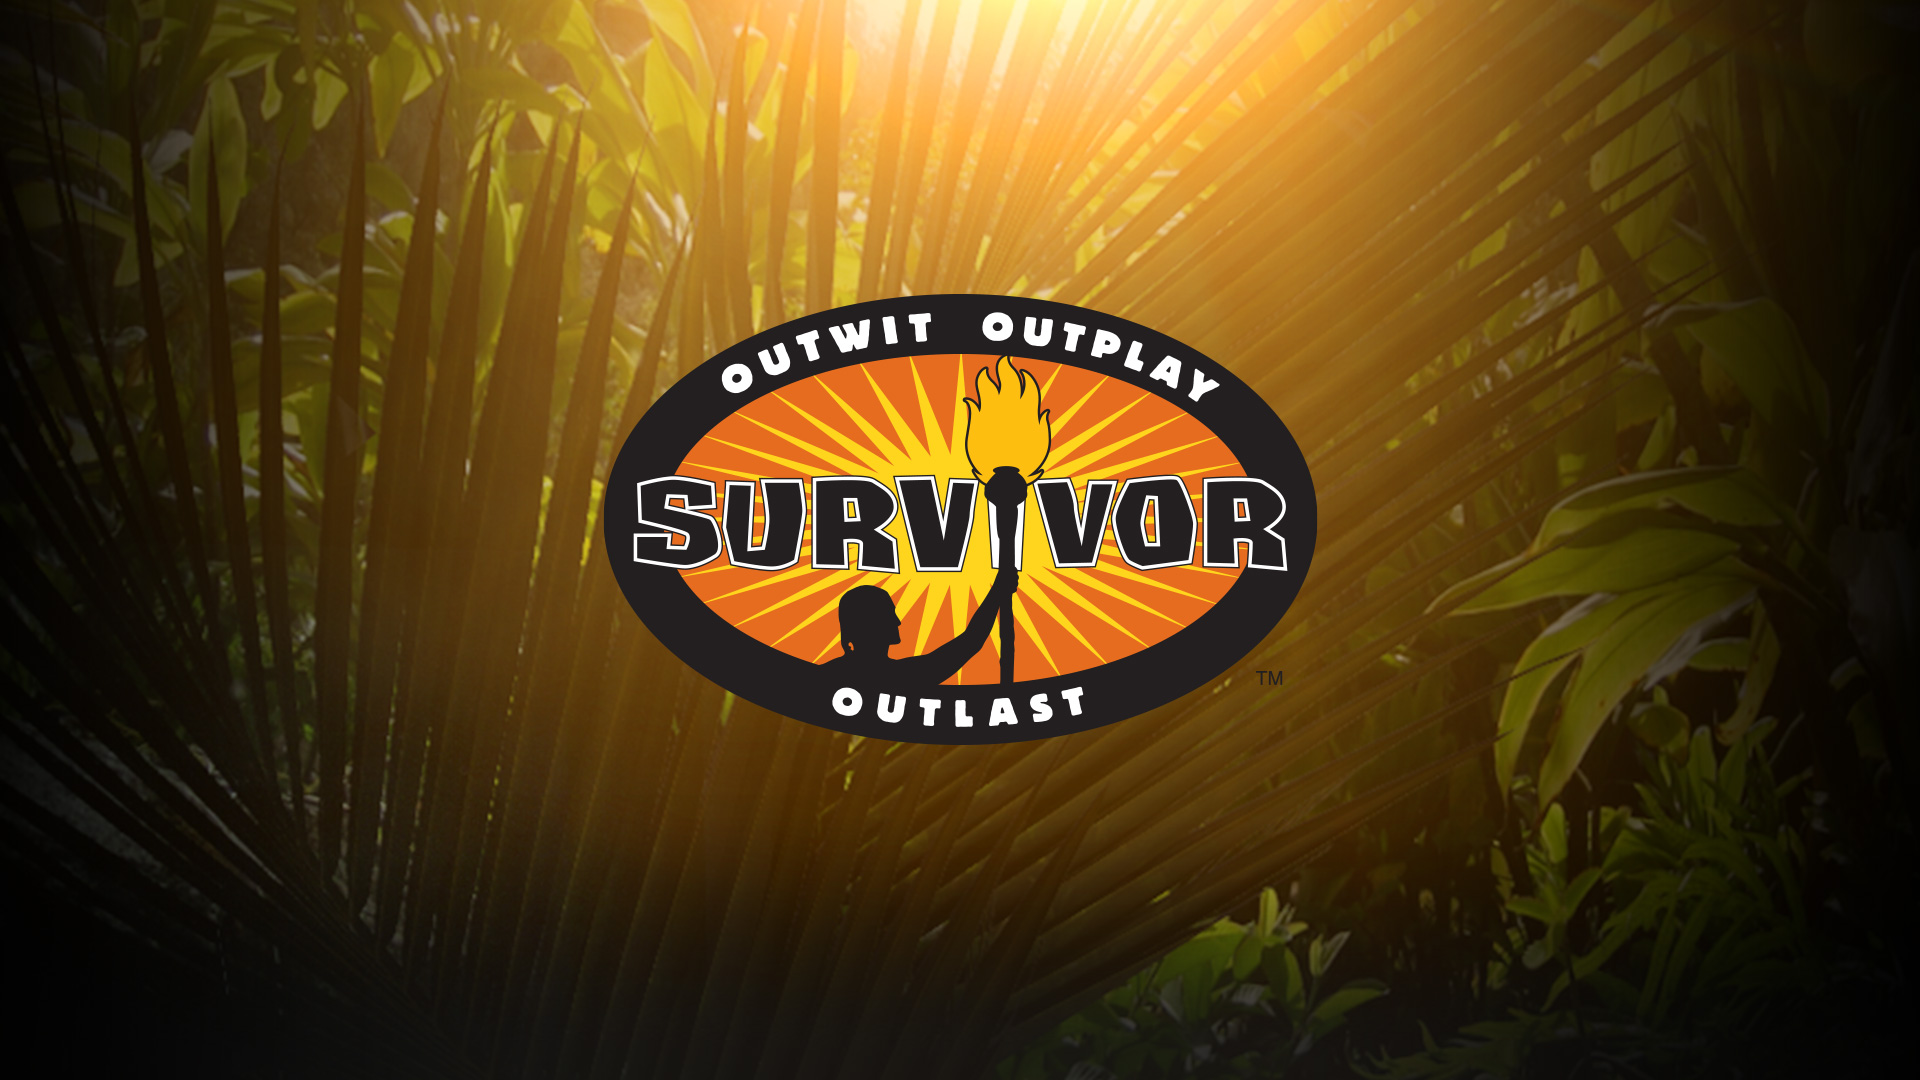 download survivor wallpaper gallery